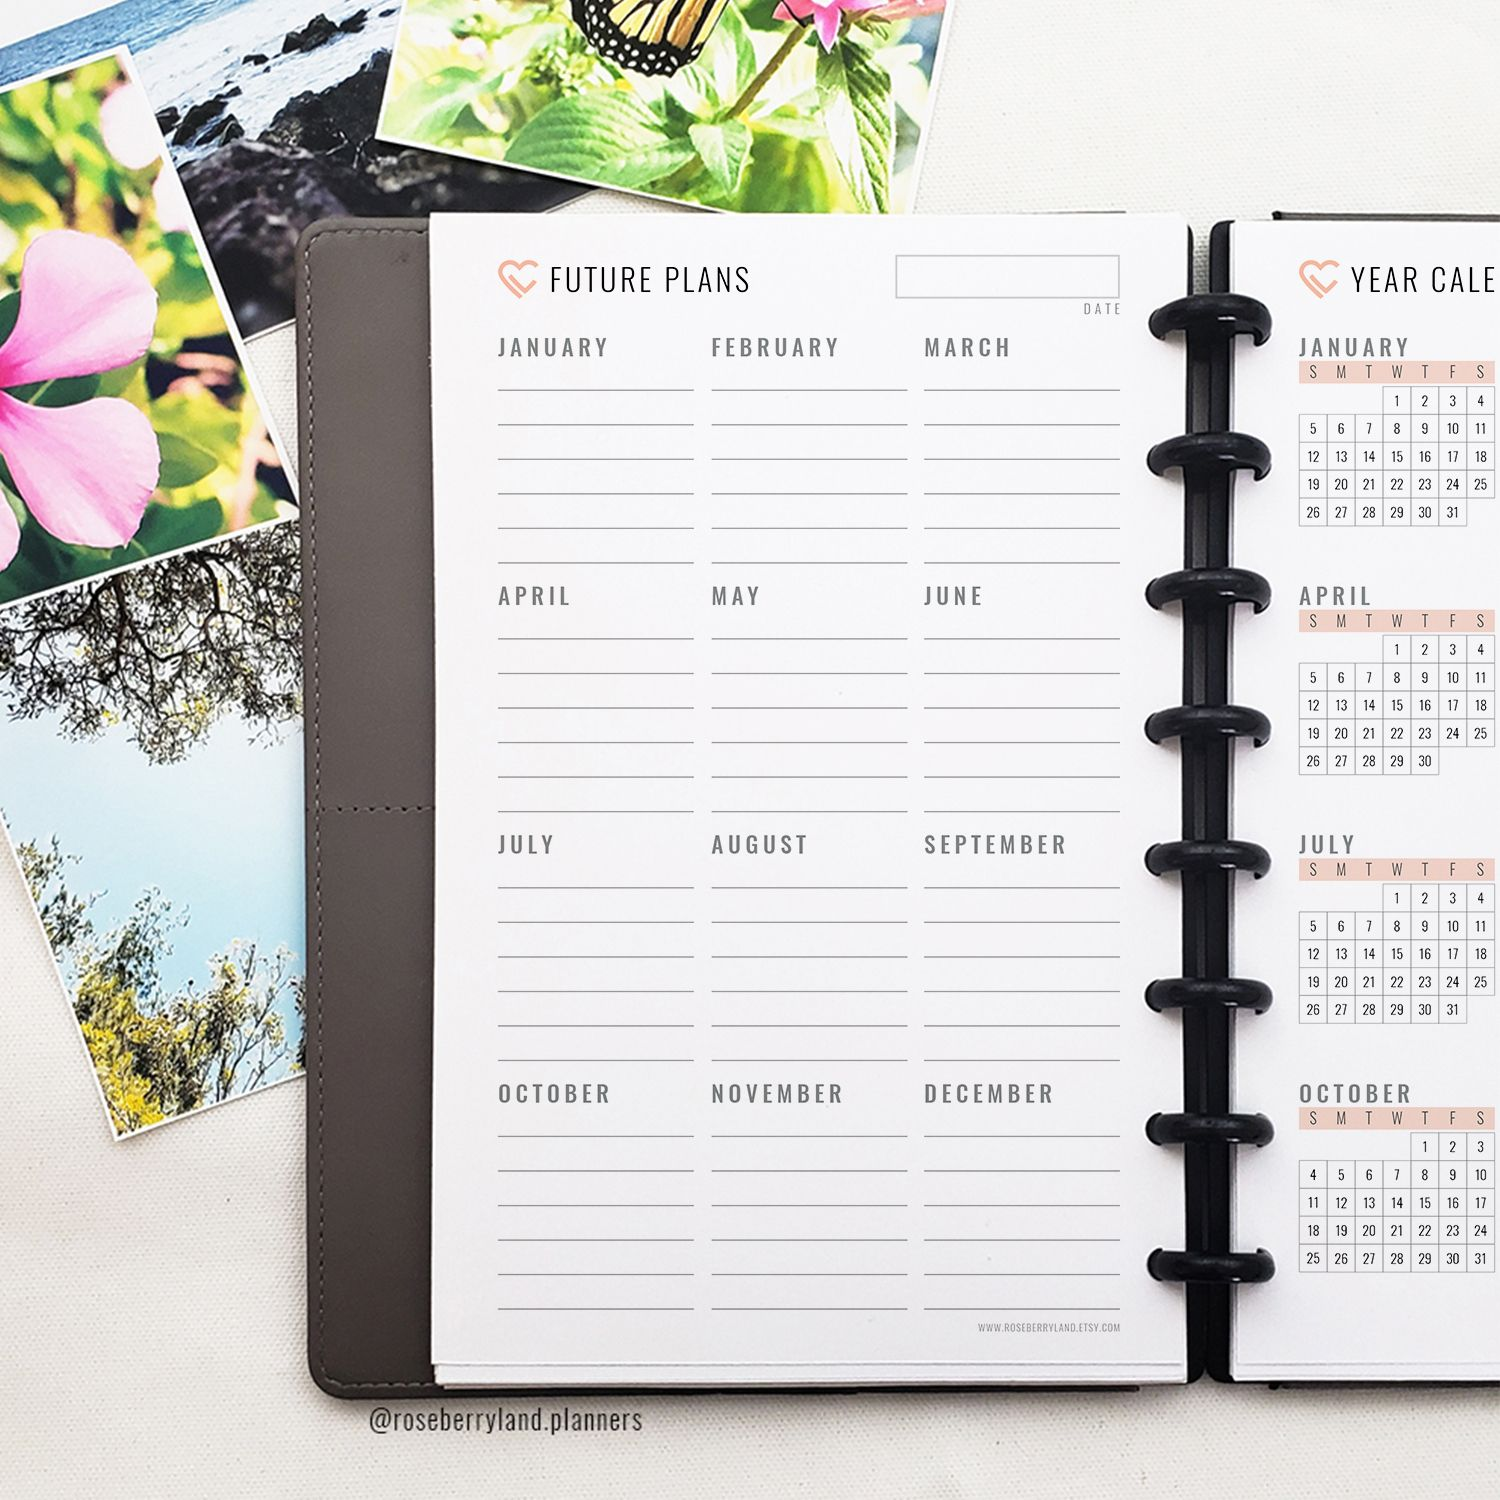 Year Calendar - Printable Planner Pages | 2020 & 2021 | 6 ...